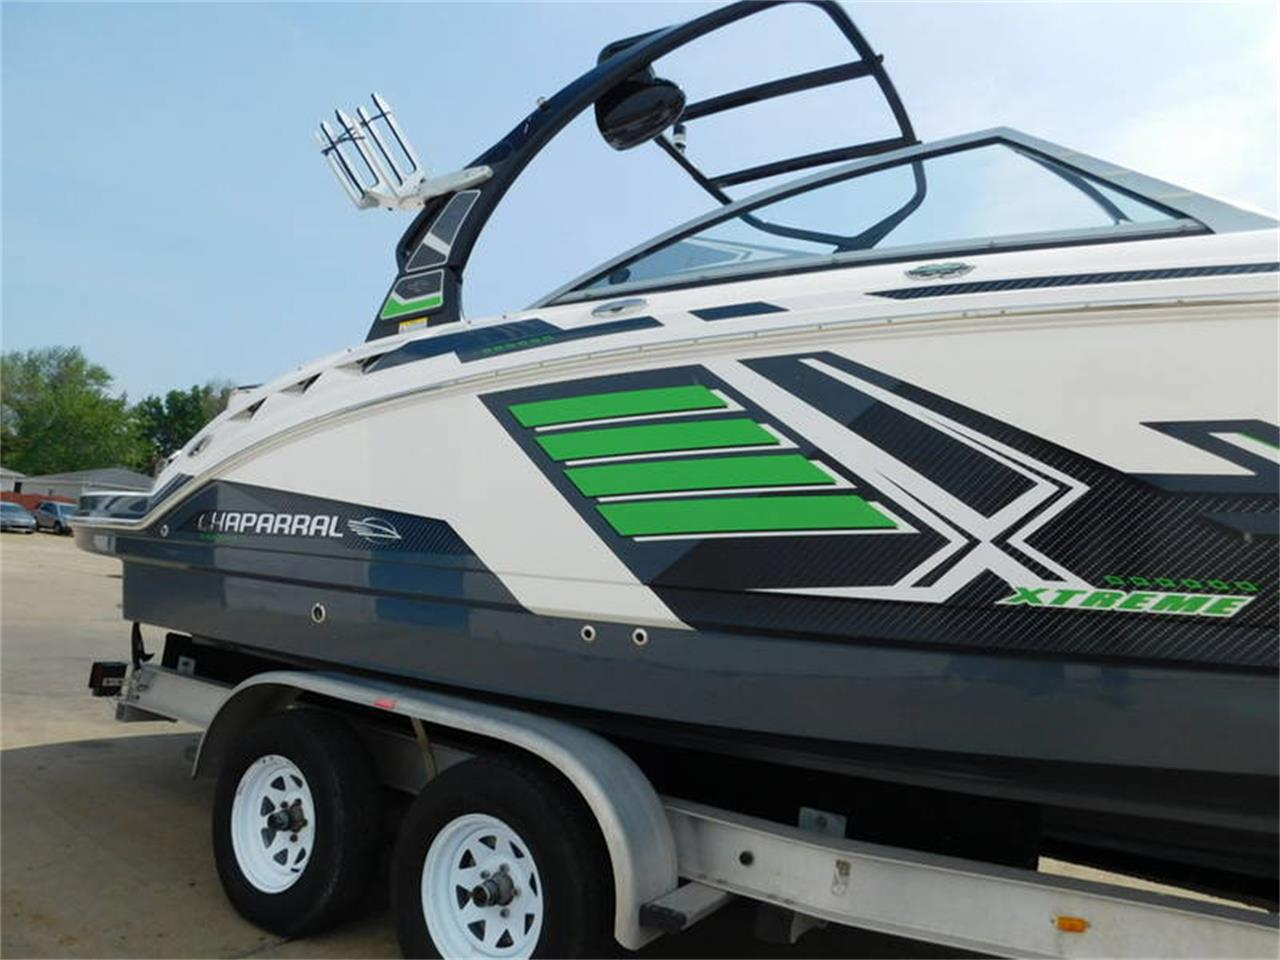 2014 Miscellaneous Boat for sale in Hamburg, NY – photo 17